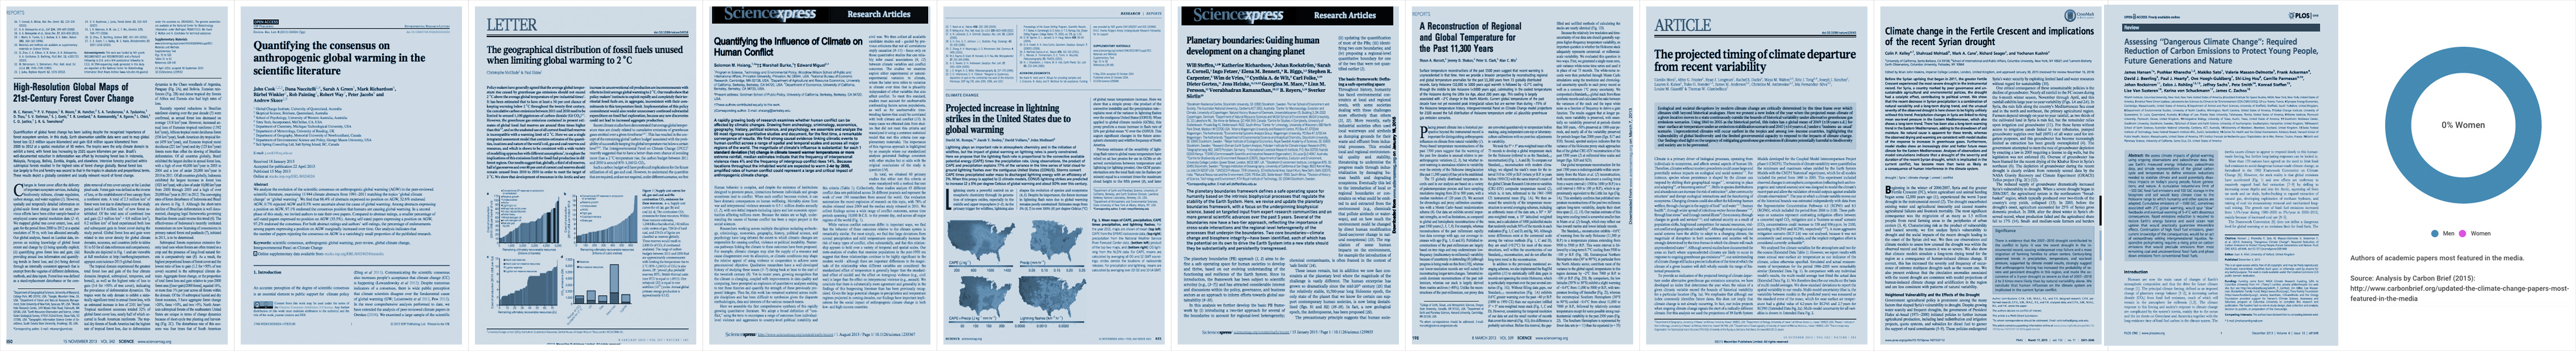 4_most influential papers in media